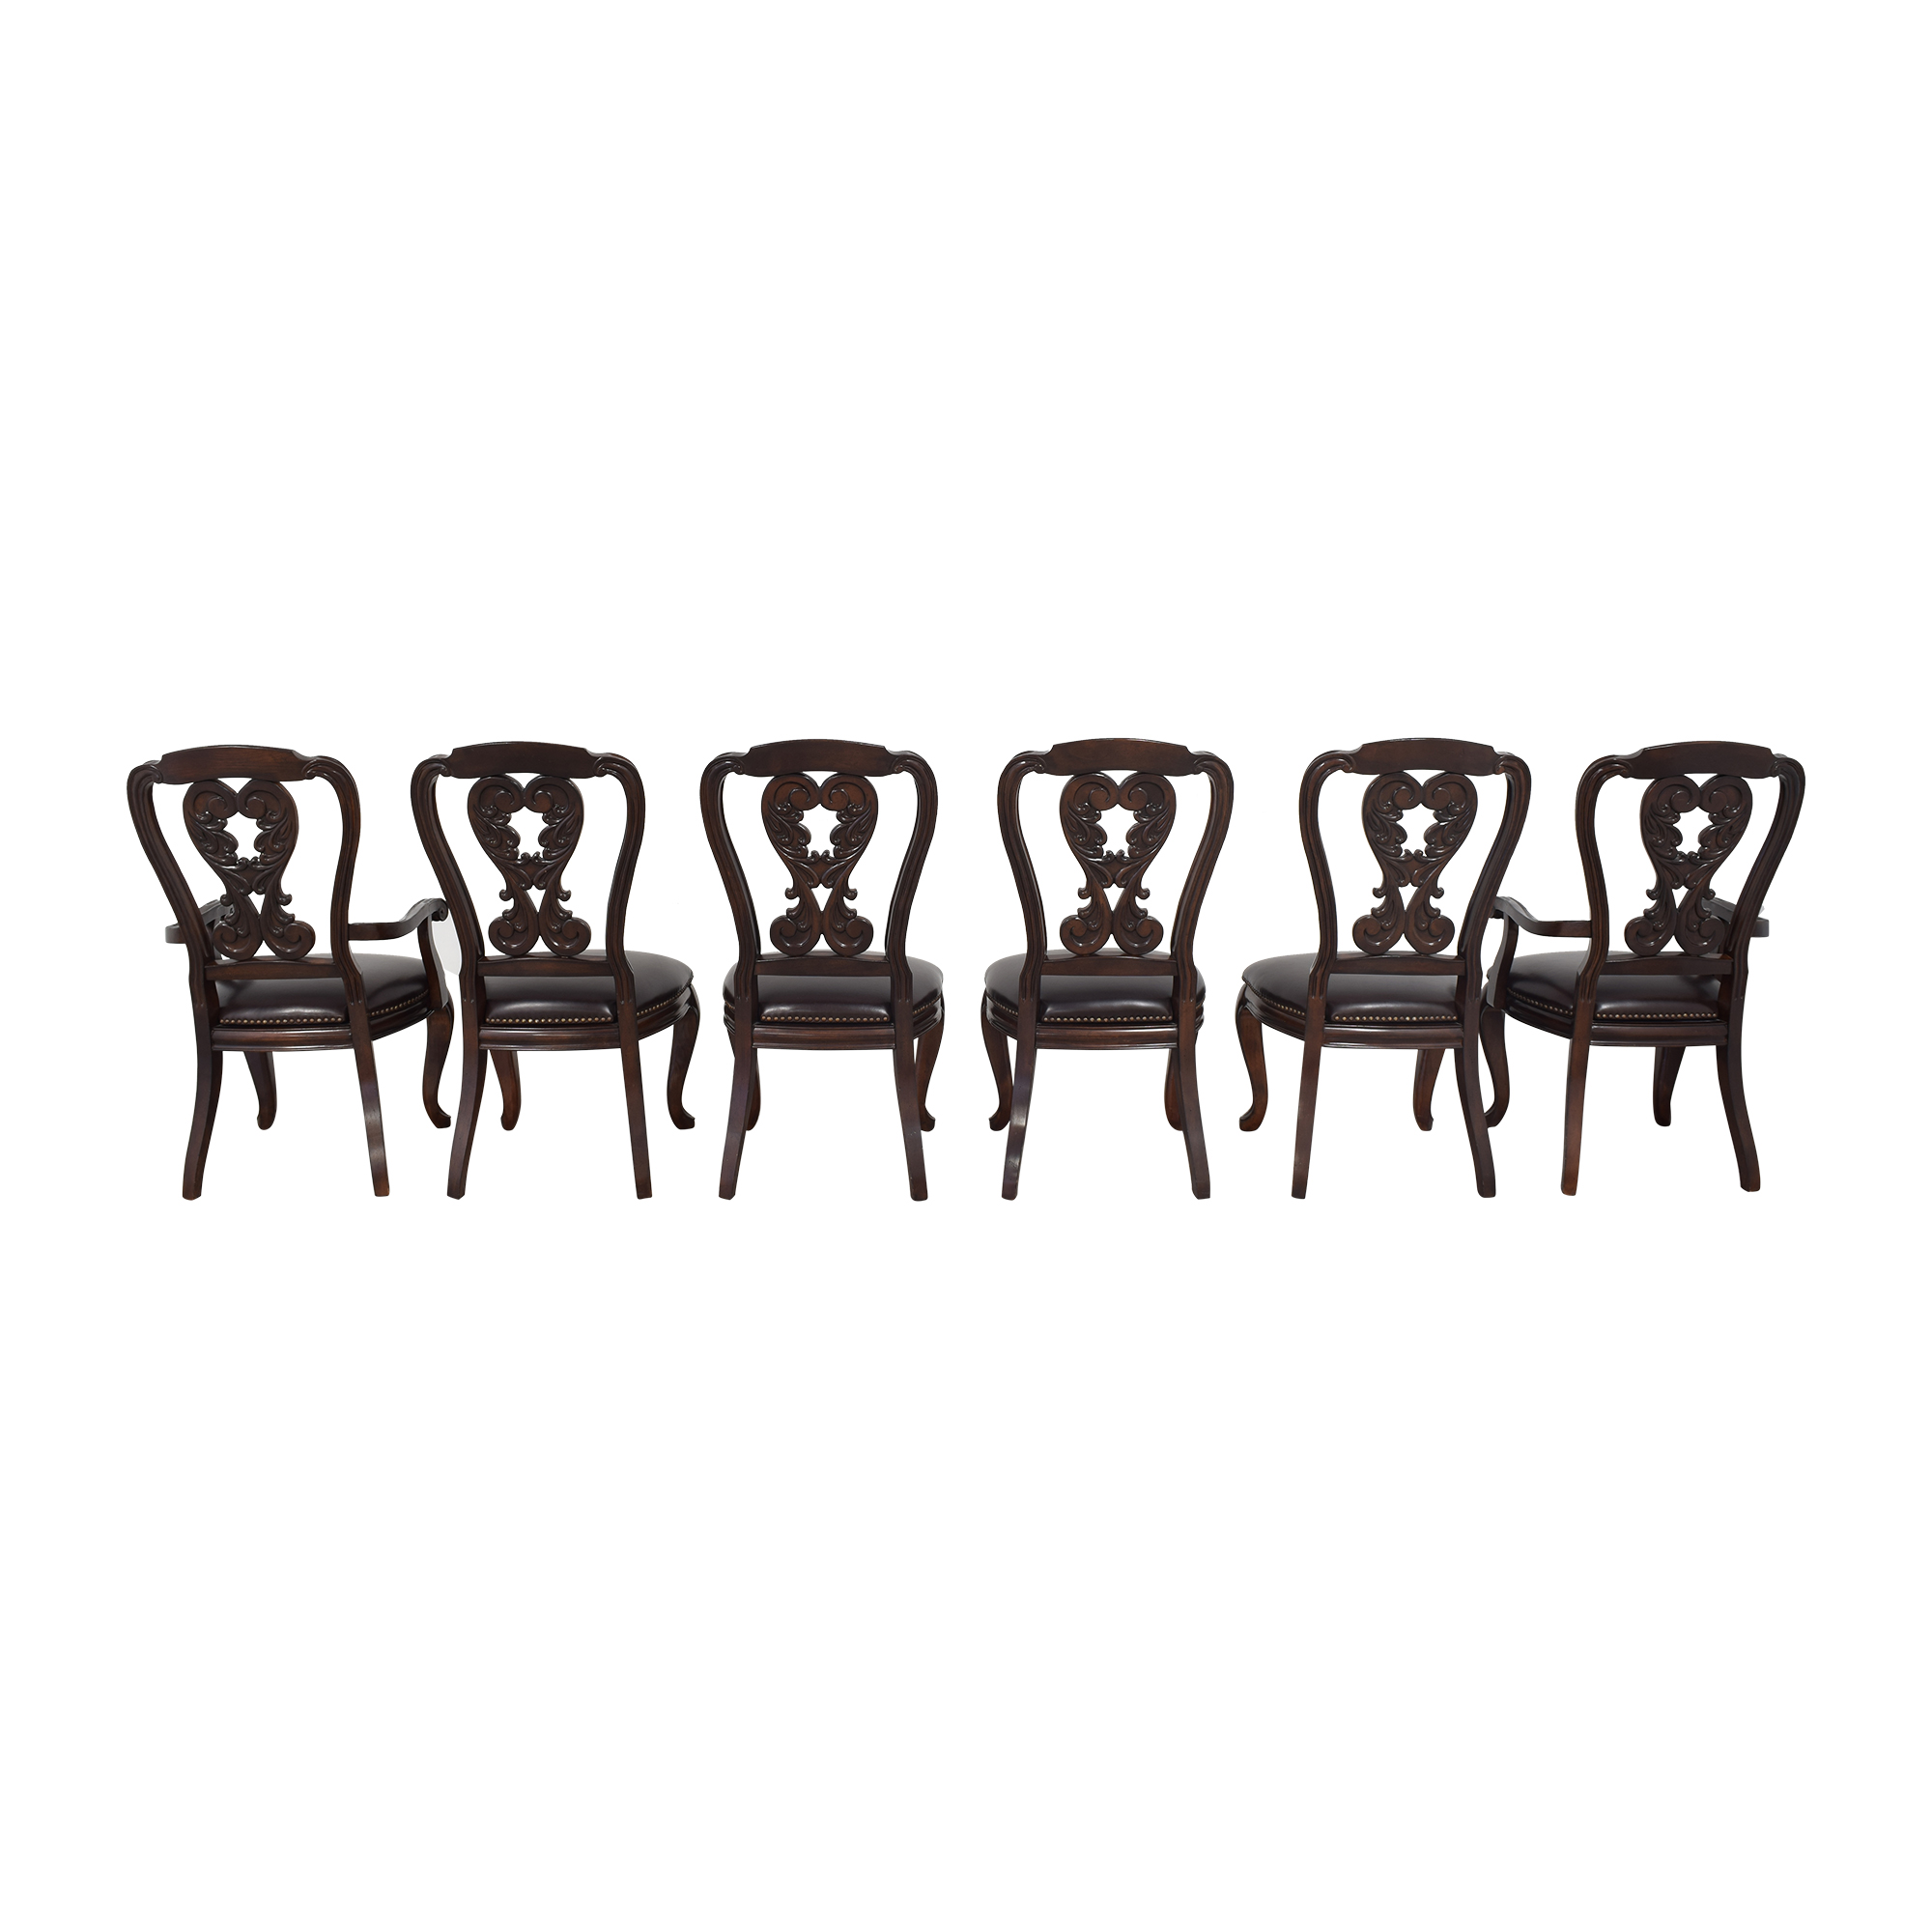 Markor International Markor International Dining Chairs coupon